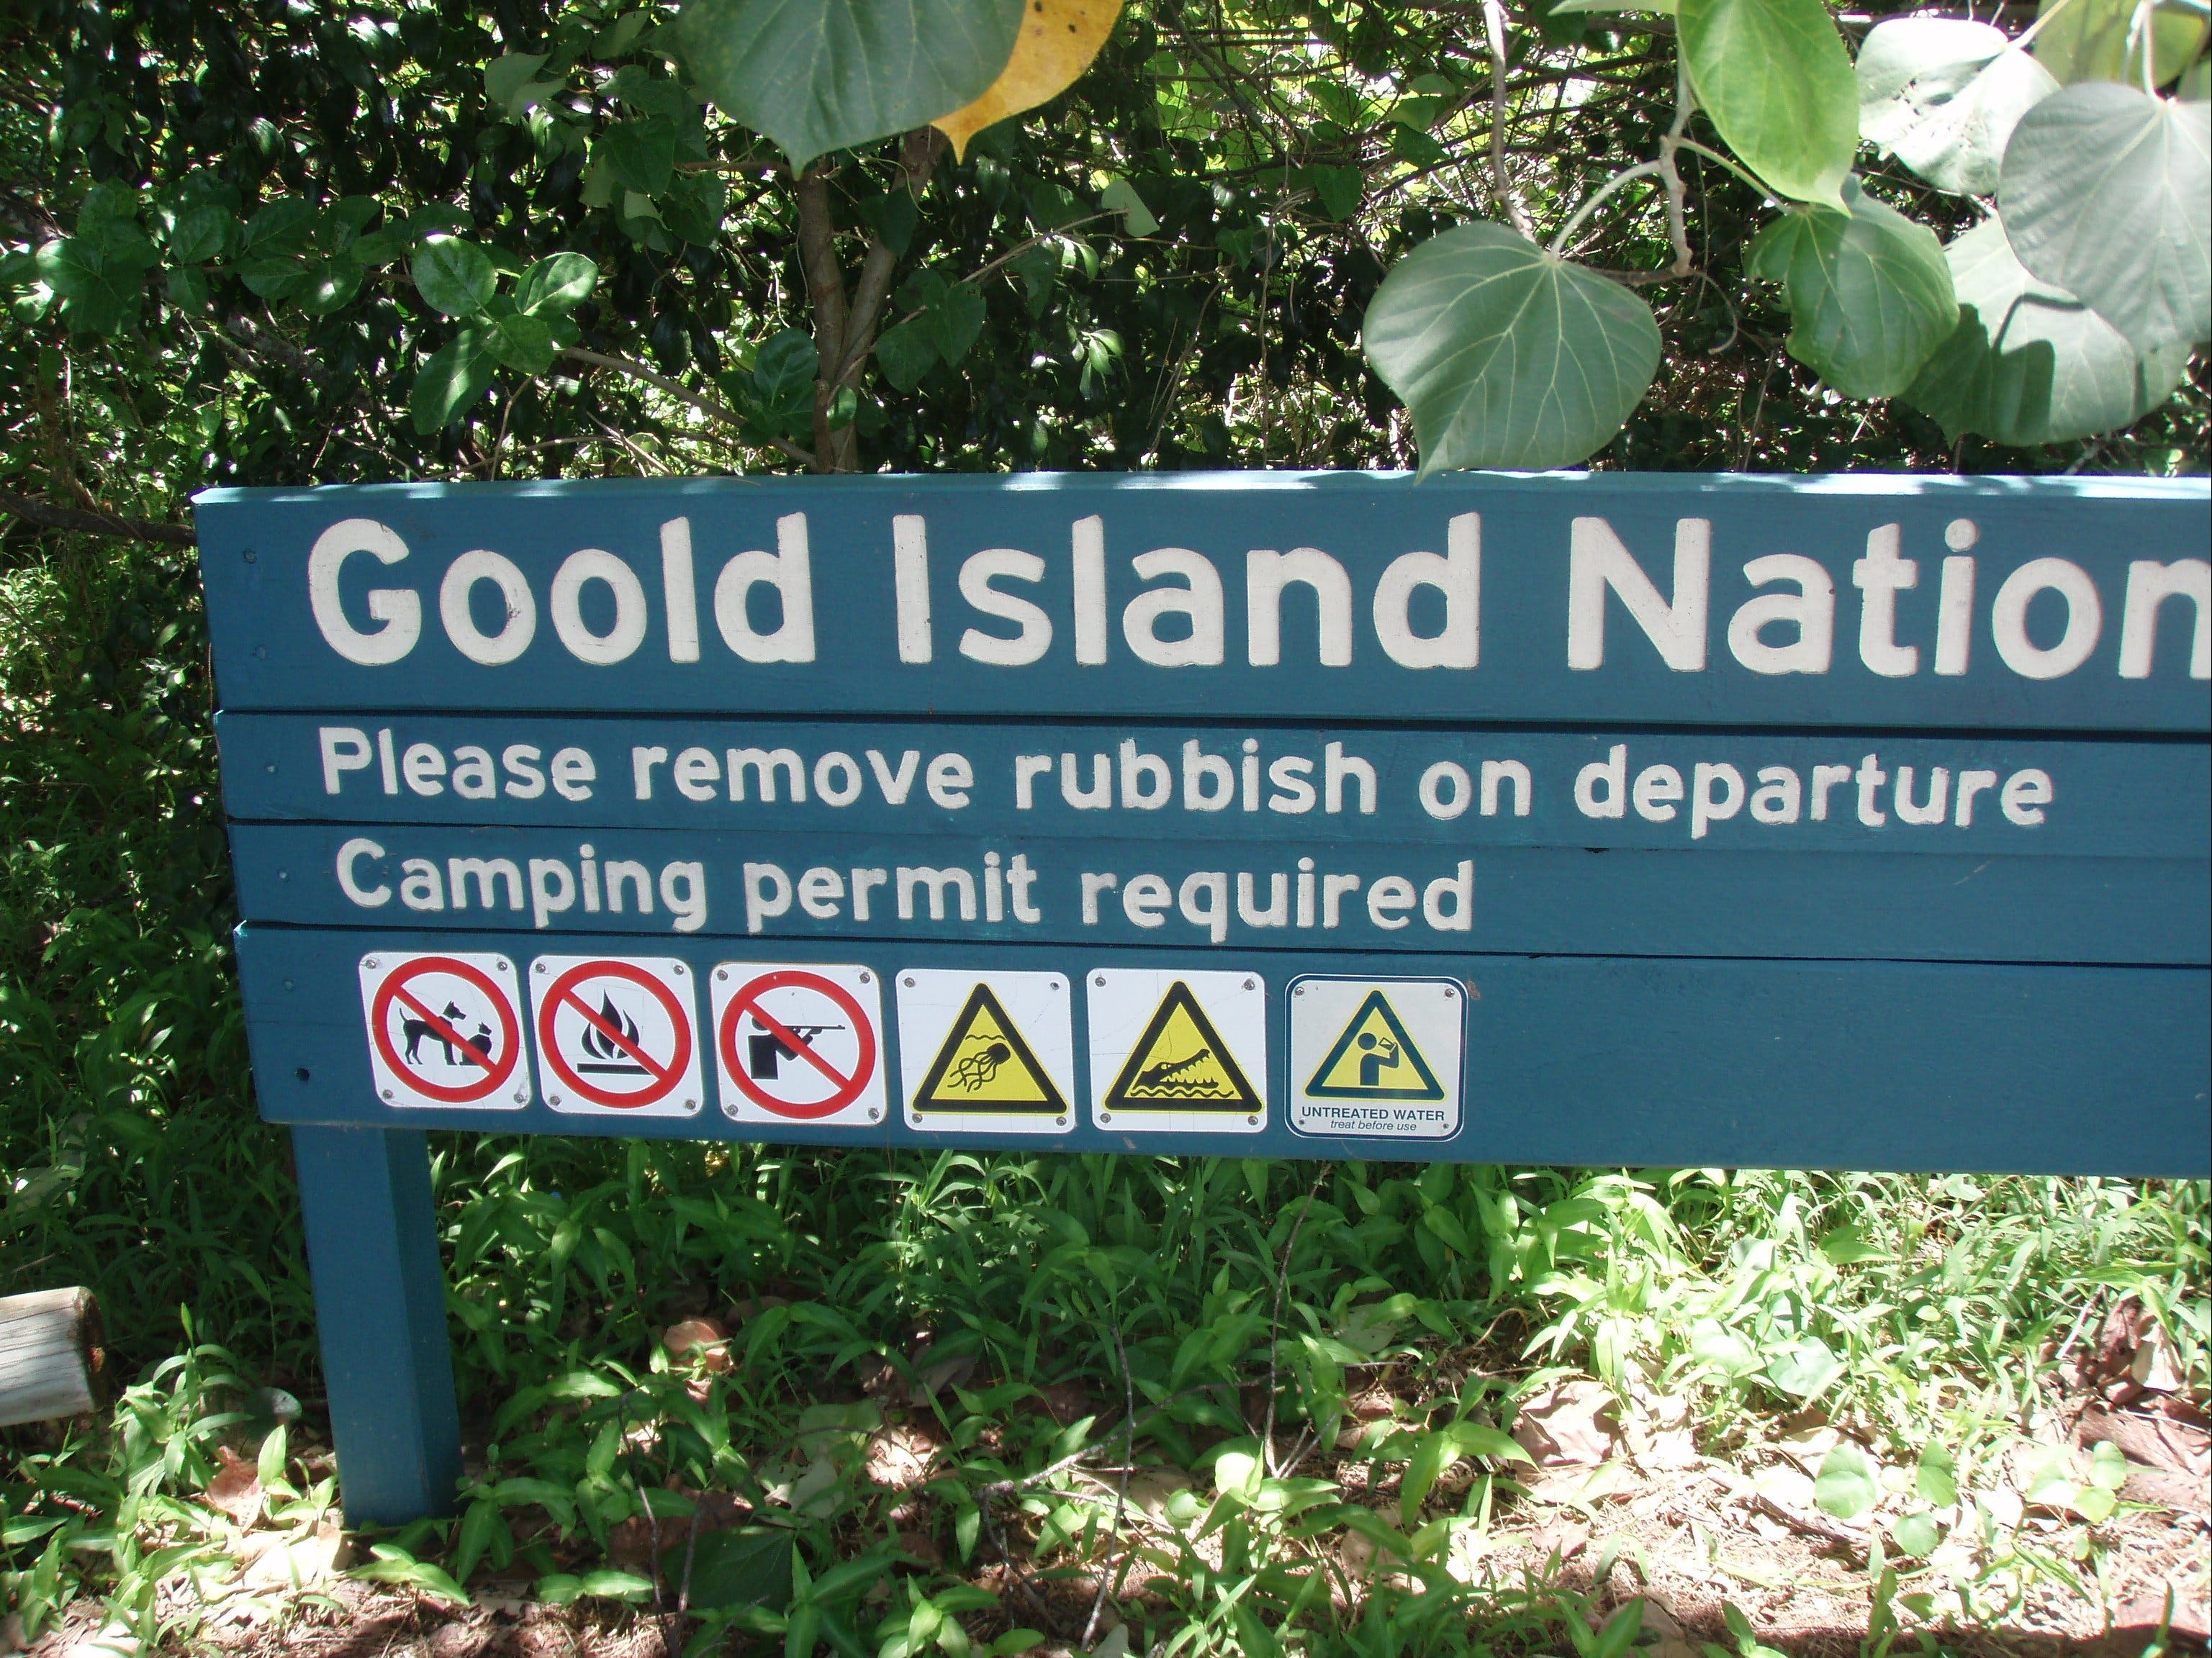 Goold Island National Park - QLD Tourism